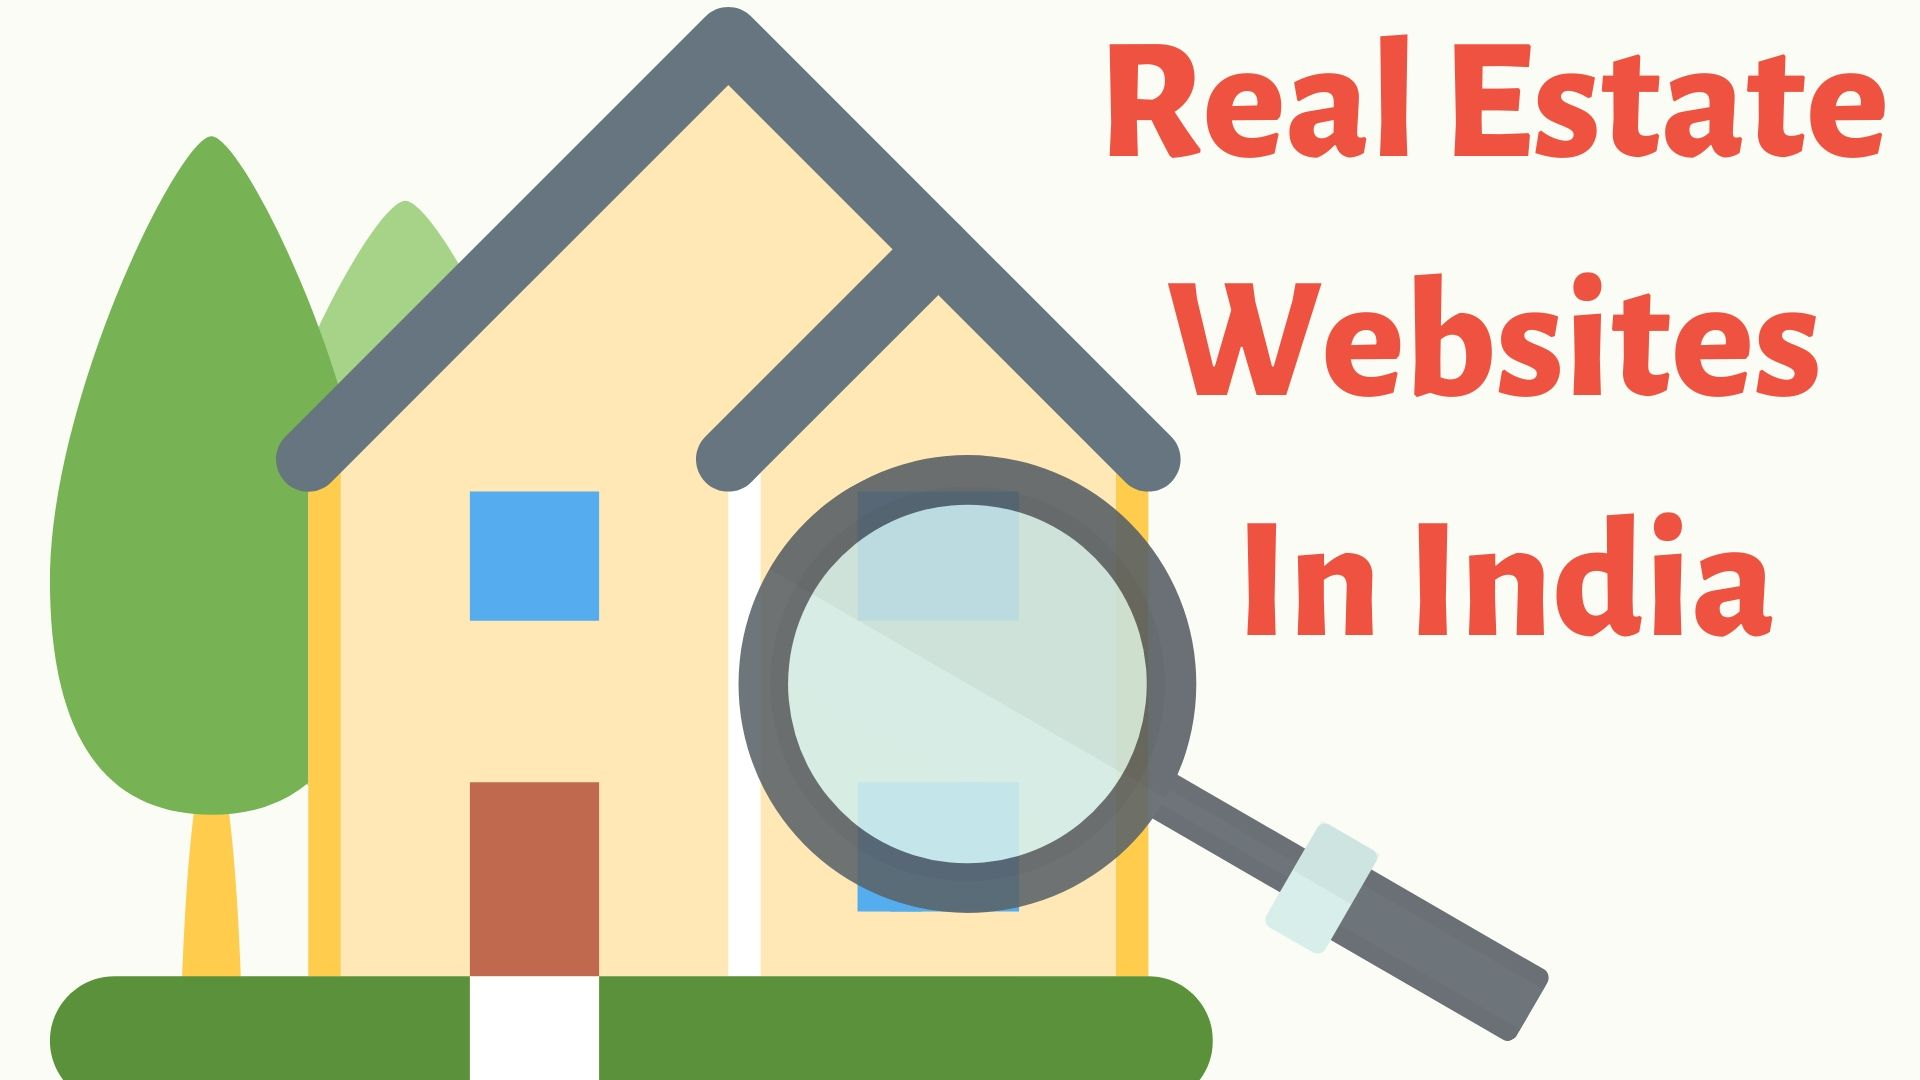 Real Estate Website In India for property search